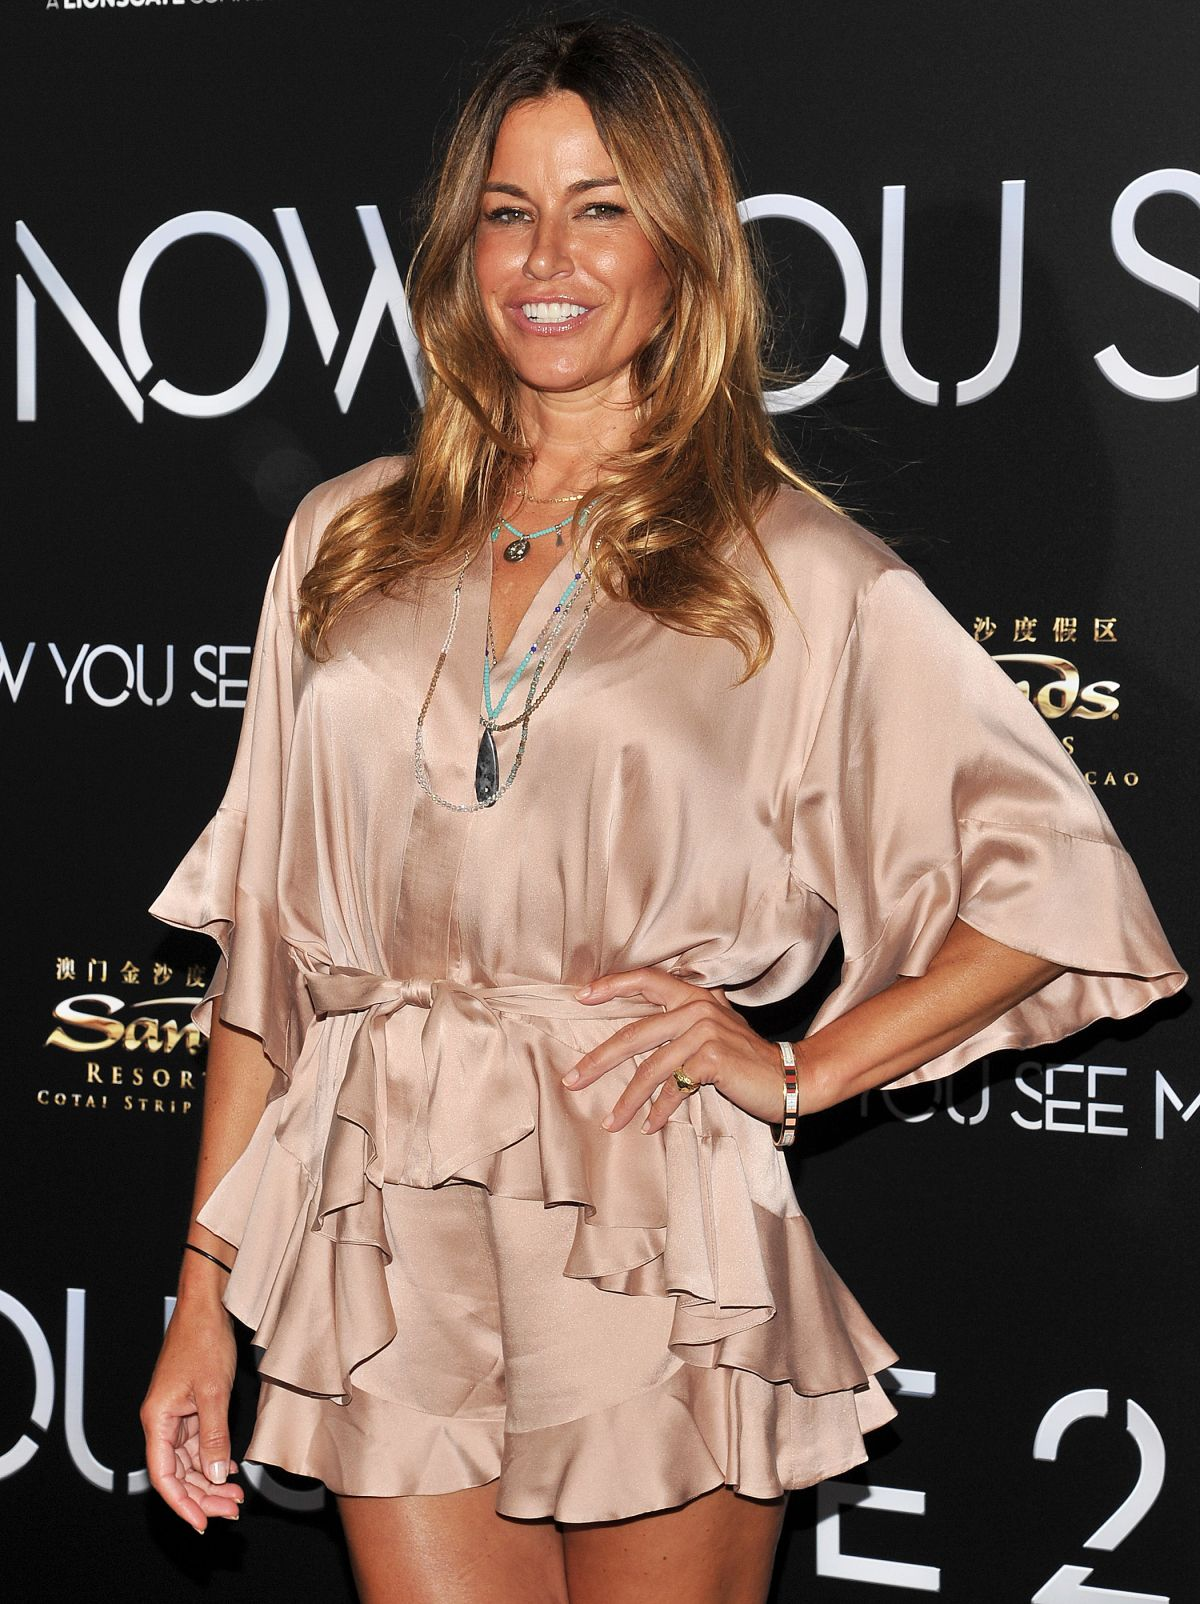 KELLY BENSIMON at Now You See Me 2 Premiere in New York 06/06/2016